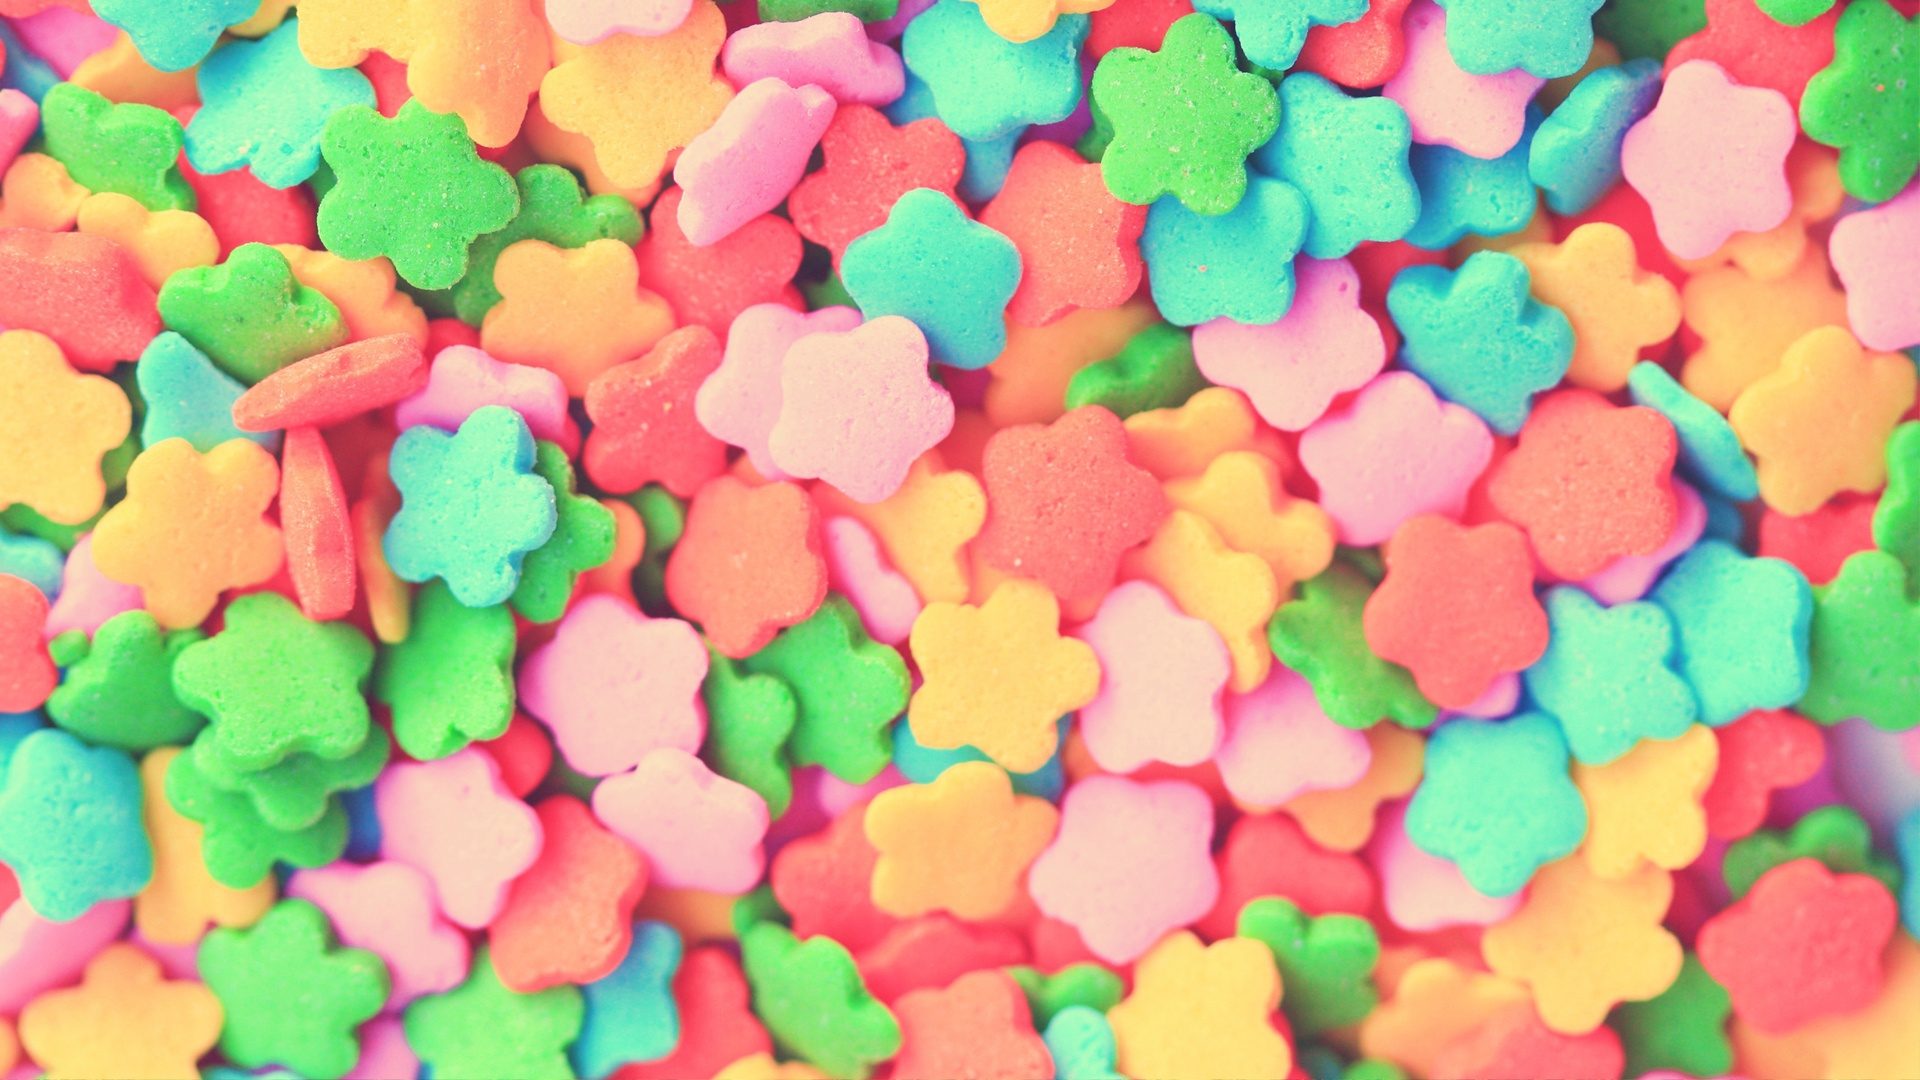 colorful candy background wallpapers 1920x1080 564315